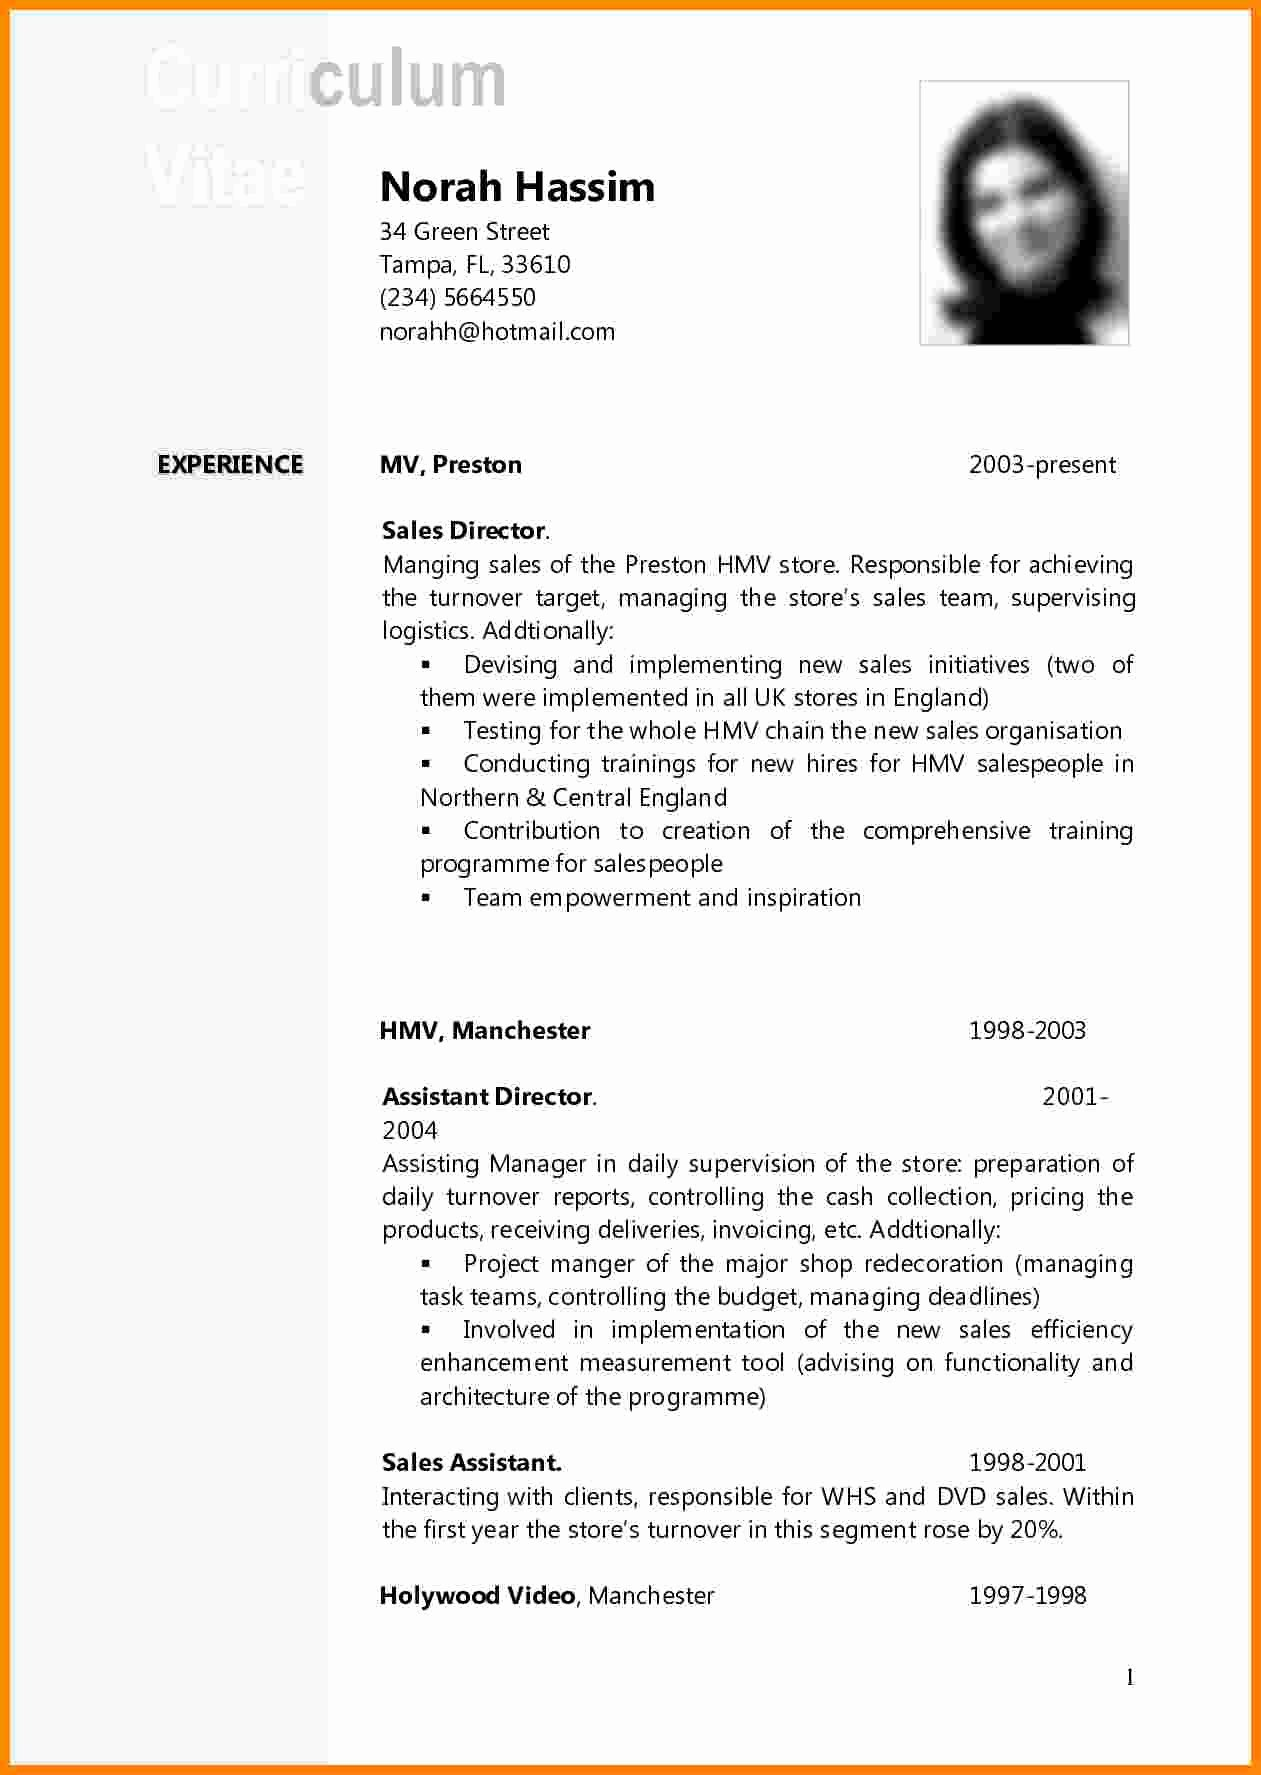 Academic Cv Template Word Lovely 11 Curriculum Vitae Example Doc